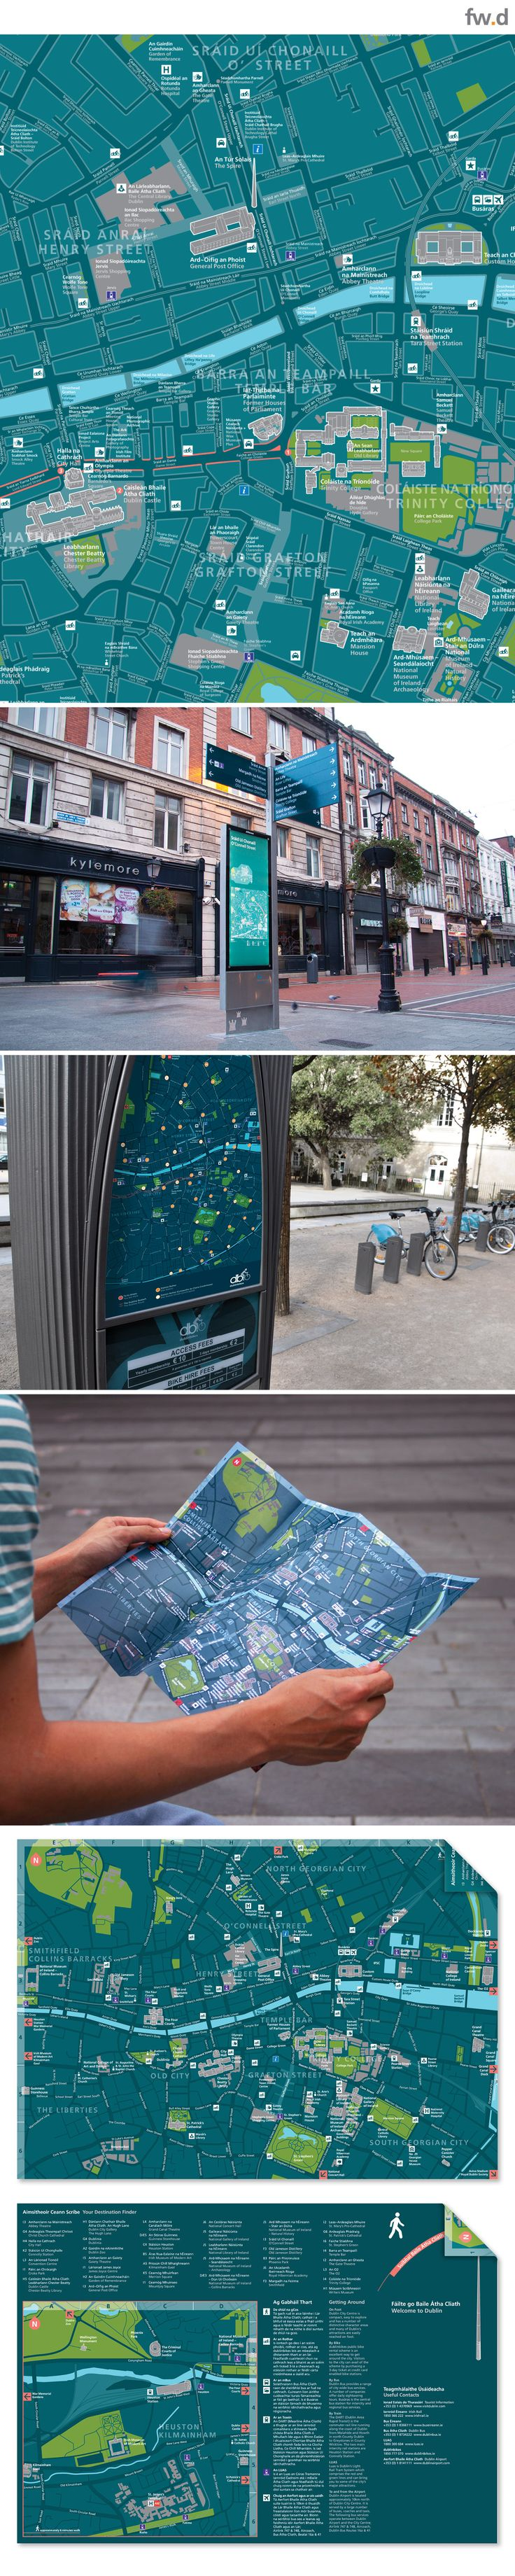 Dublin City dual language pedestrian wayfinding map design for on-street and…